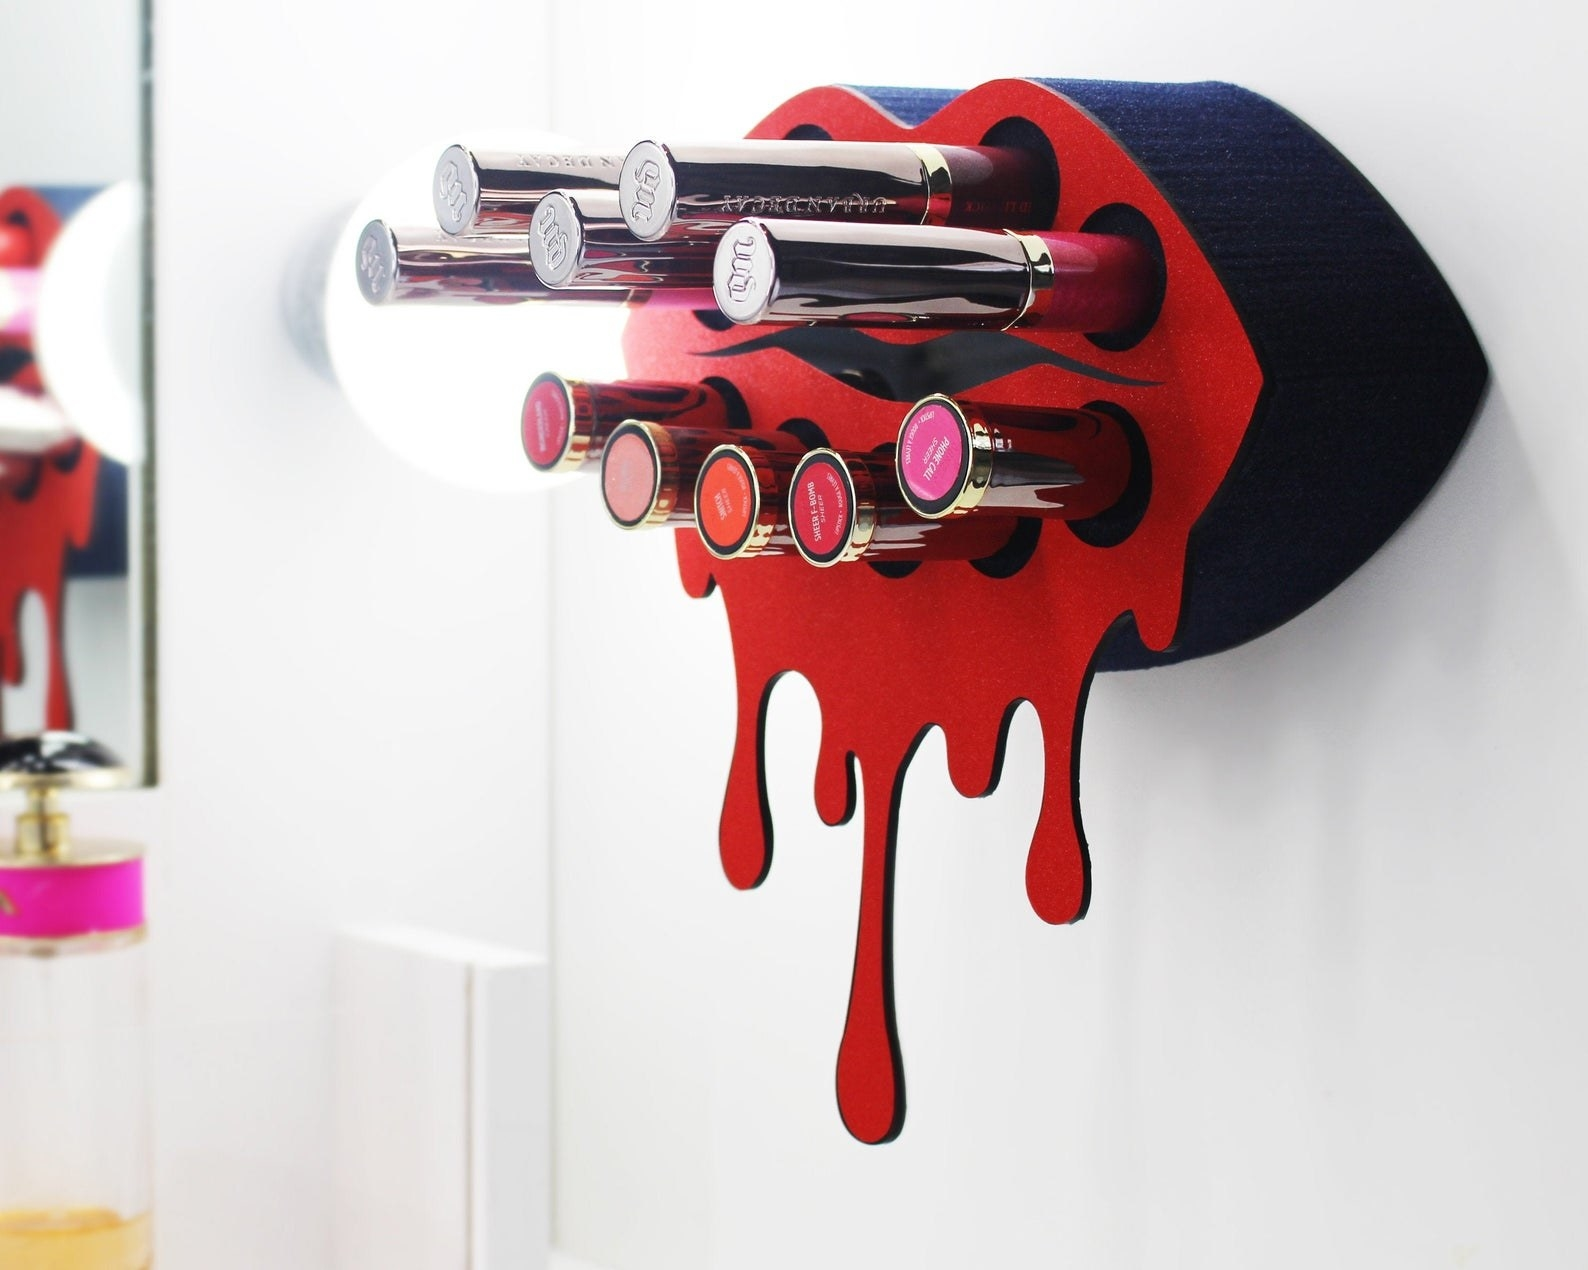 the lip-shaped lipstick holder holding a variety of lipsticks and glosses